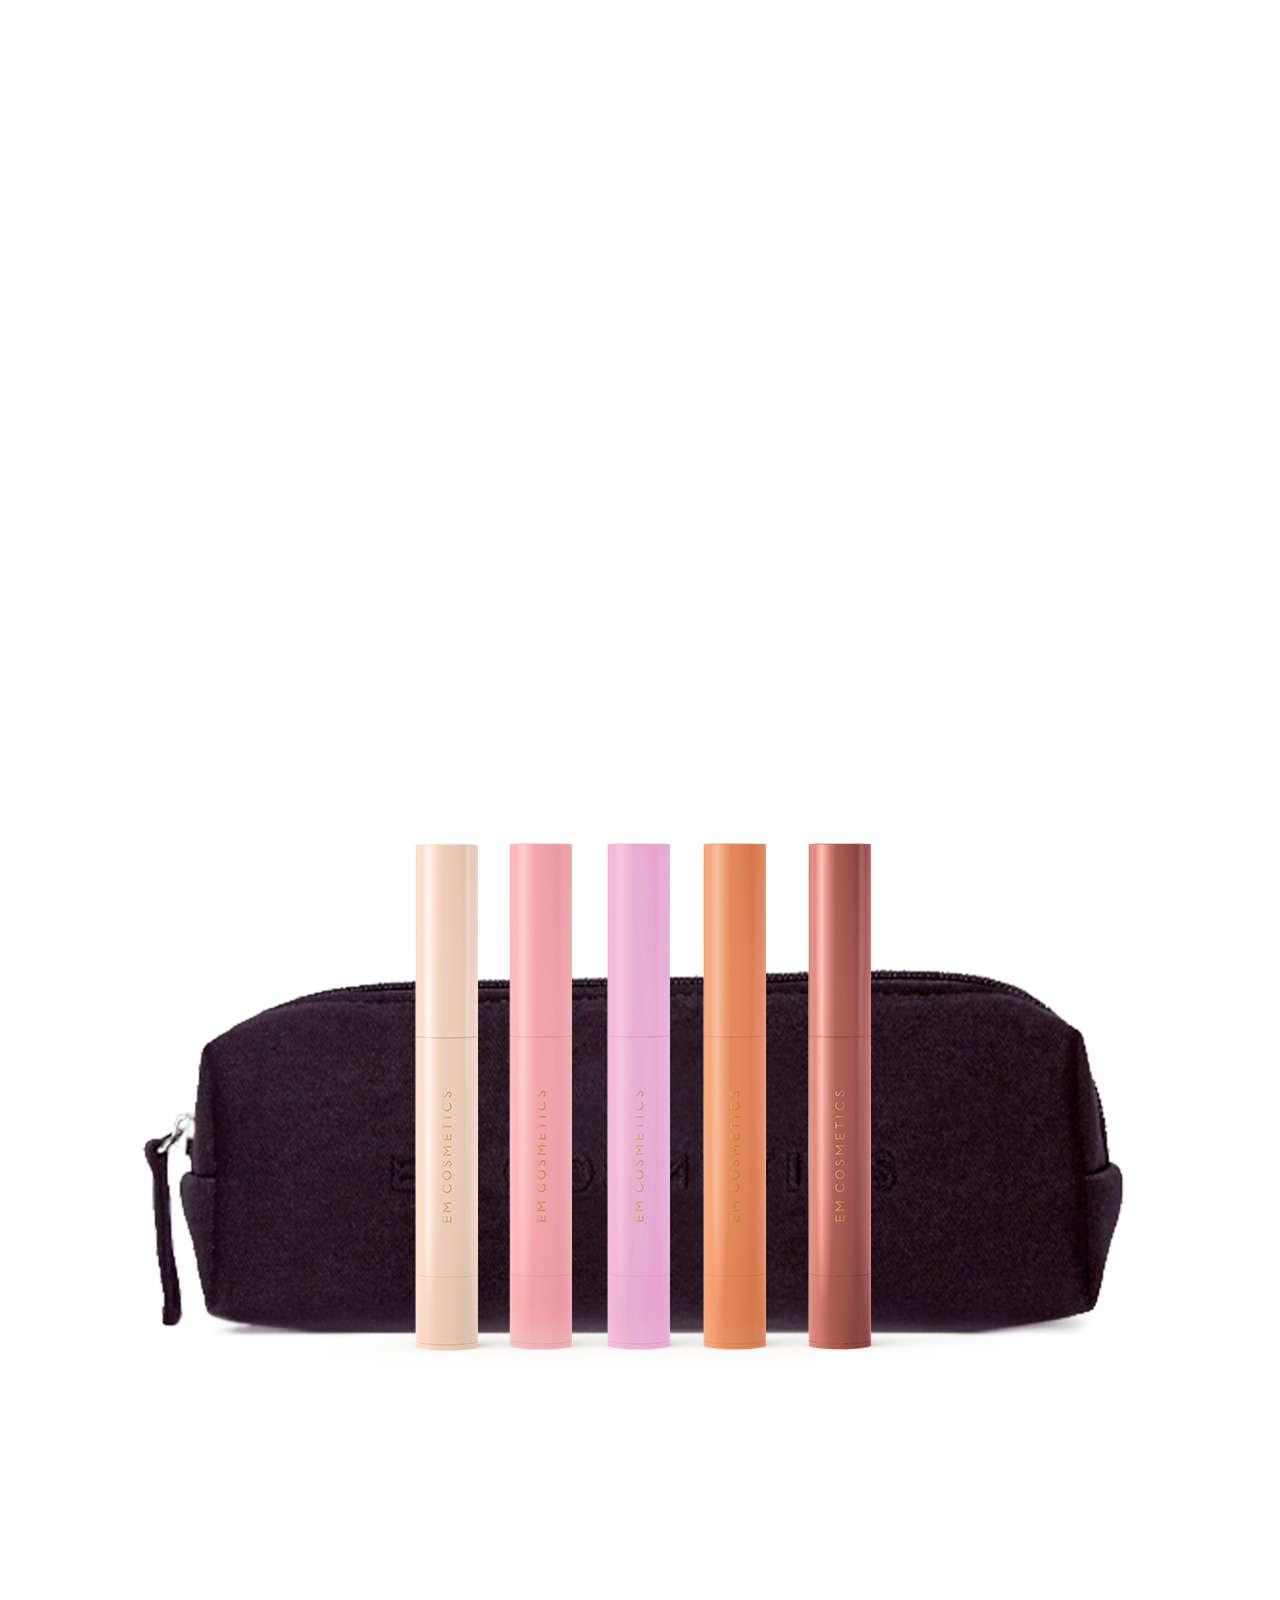 LIP CUSHION COLLECTION SET